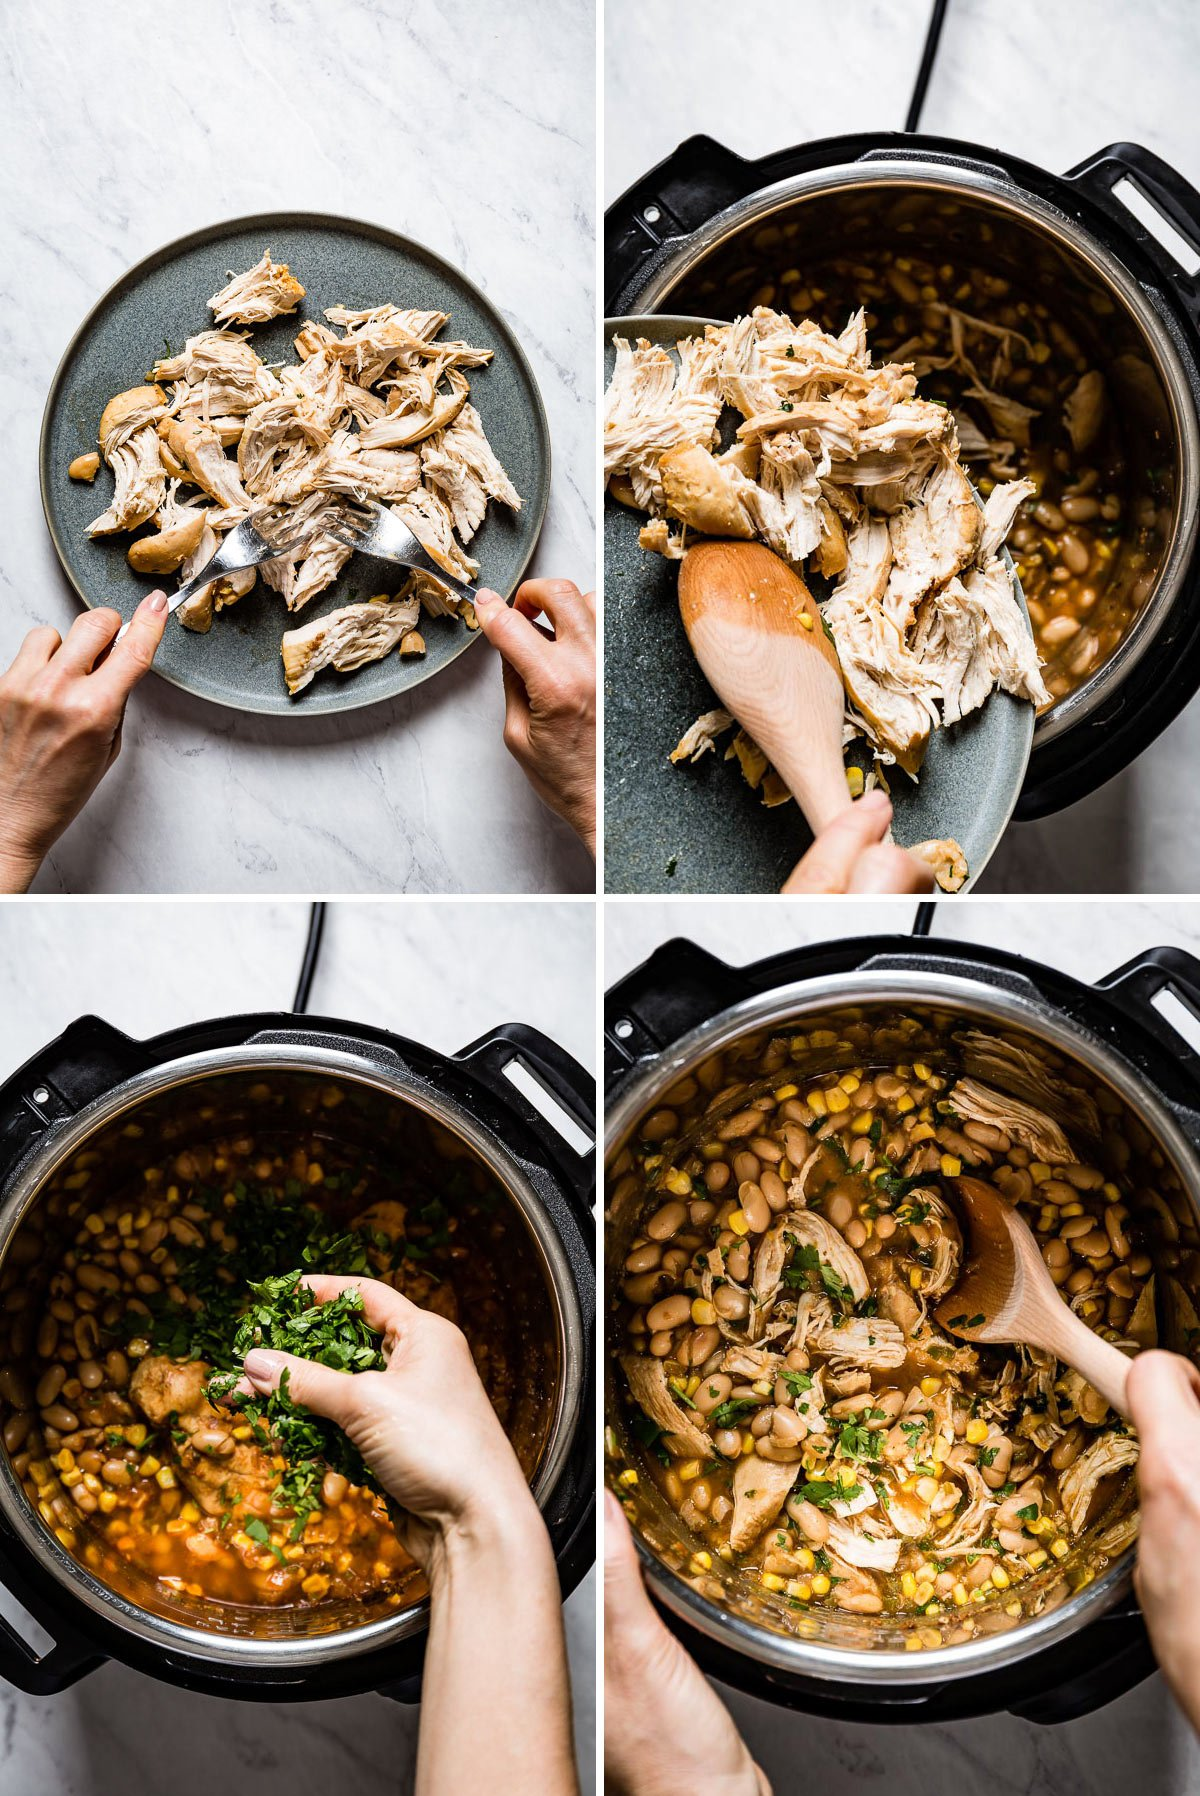 Person shredding chicken and putting it back in the instant pot